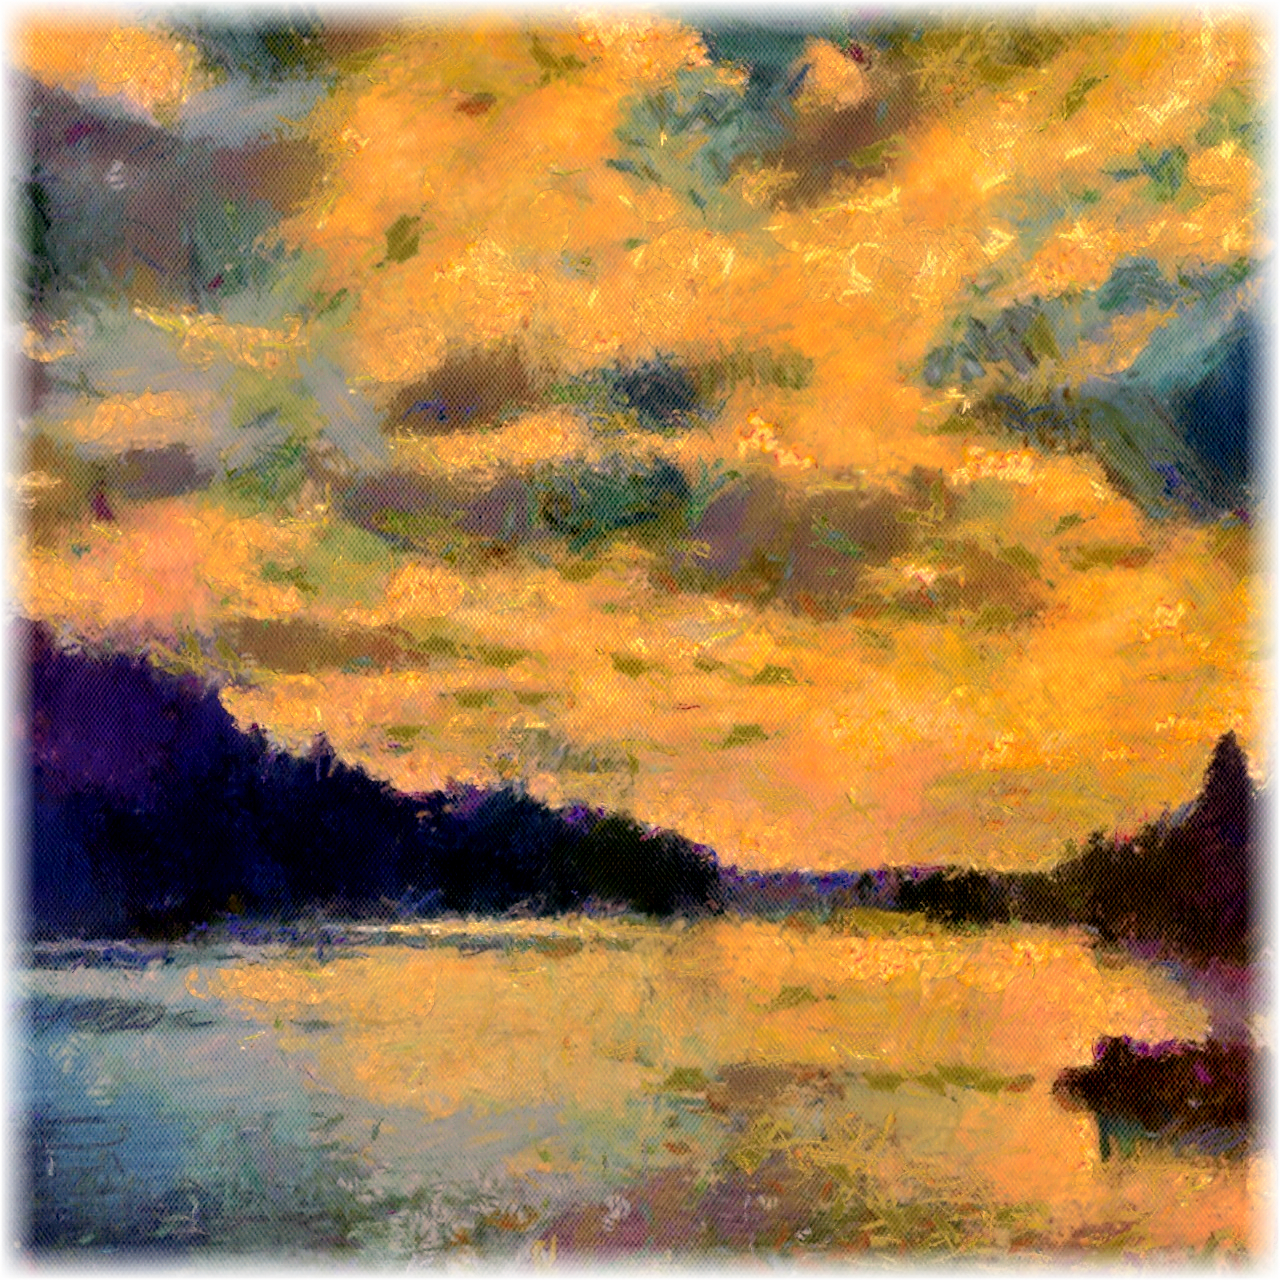 Photo: Sunset over Lake Oswego Here is a little #iPaintography  painting of Lake Oswego for #ThirstyThursdayPics  +Giuseppe Basile +Mark Esguerra. Apps: Camera+, PicFX, Phototoaster, Autopainter3 (Monet and d'Orcia filters), Image Blender, and Photogene 2. +Mobilart Club +Jacob Dix +Paul Brown +abhishek chamaria +Alexius Jørgensen  +Breakfast Club  #BreakfastClub  +Gemma Costa +Andrea Martinez  #iPhoneography   #iPaintography